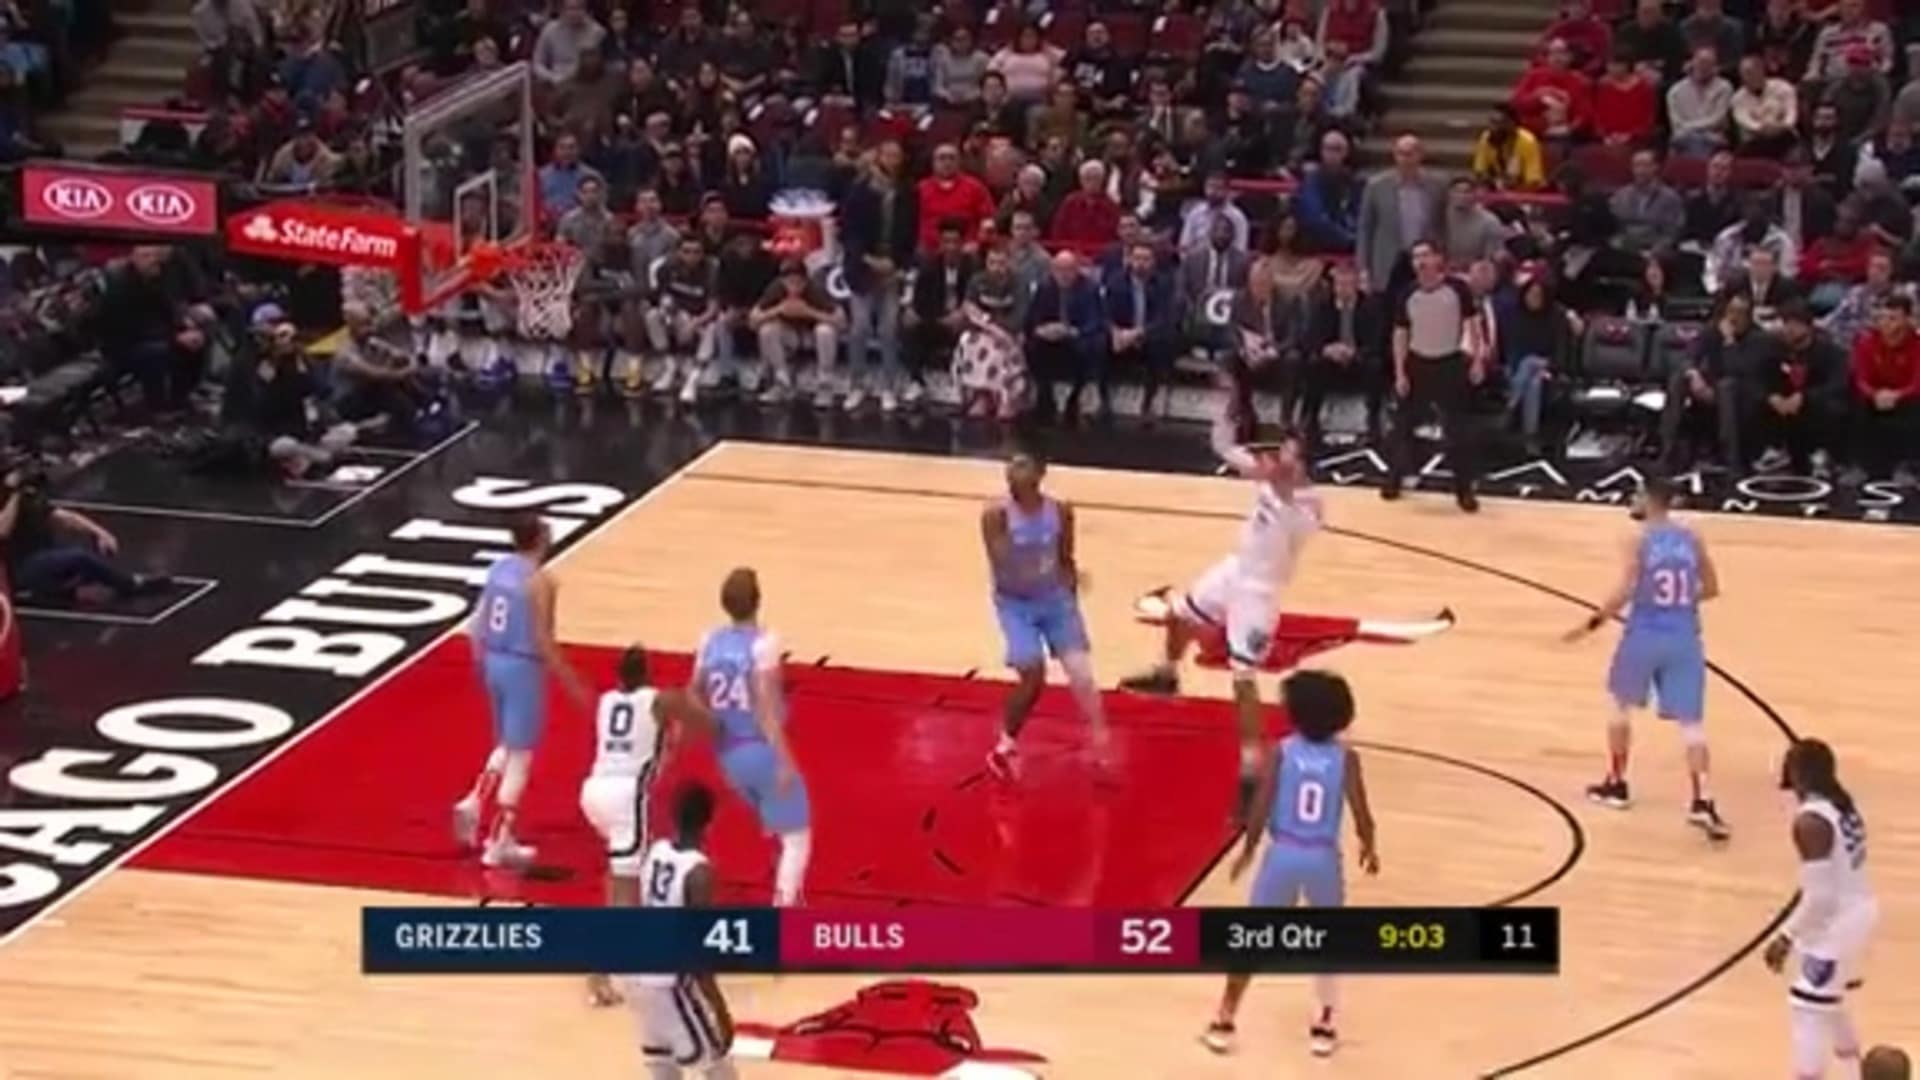 Jonas Valanciunas' nasty fadeaway in the paint